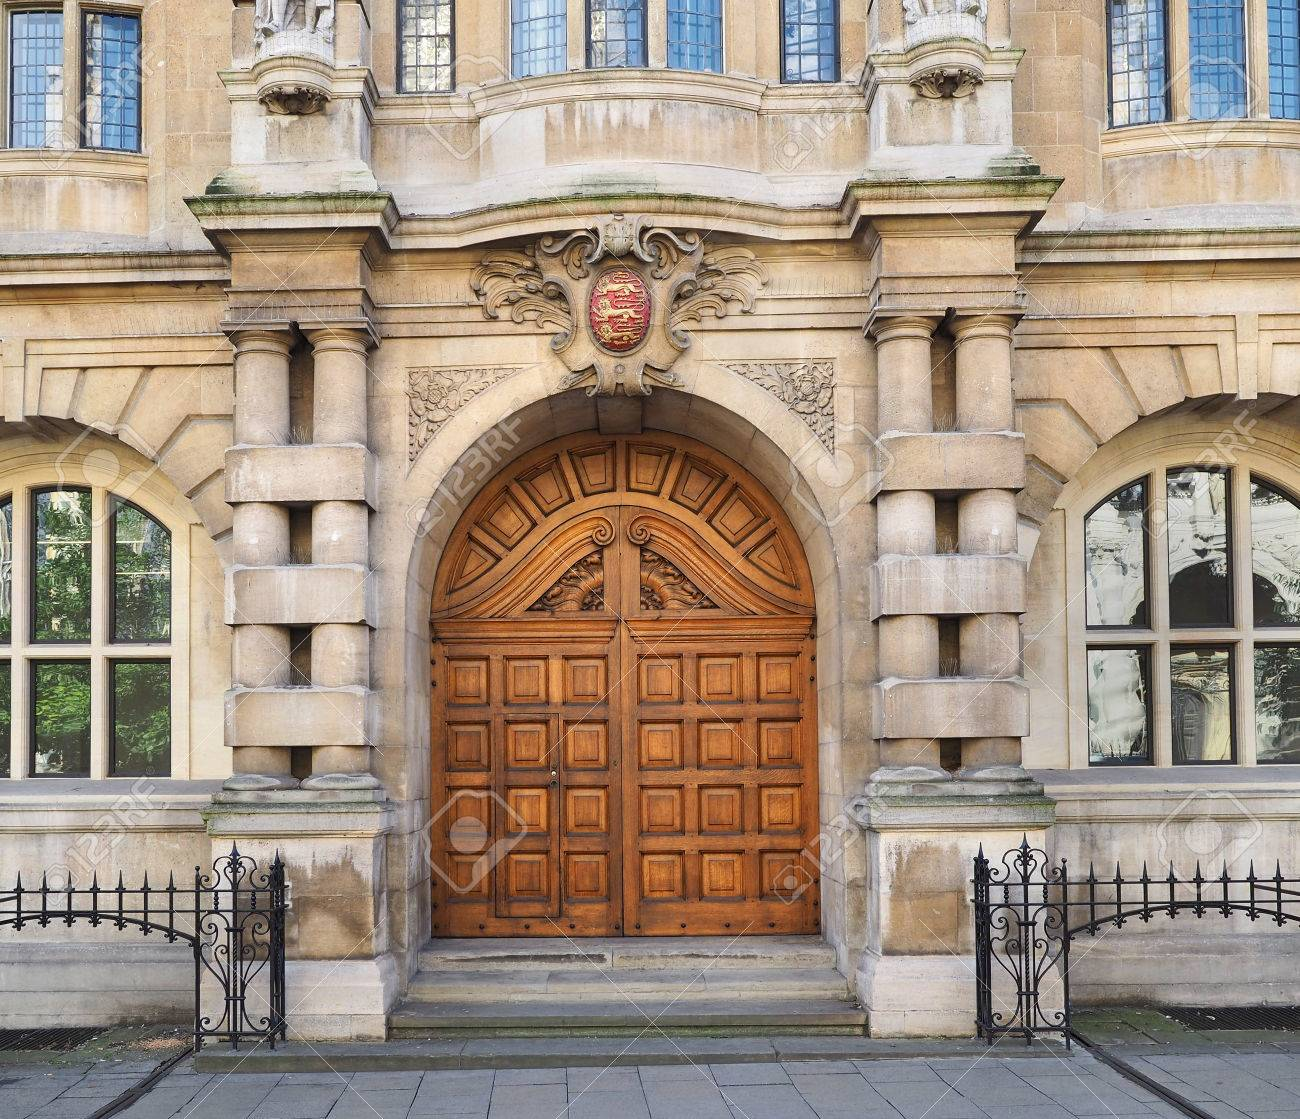 Oxford university old wooden doors Stock Photo - 64953104 & Oxford University Old Wooden Doors Stock Photo Picture And ... Pezcame.Com